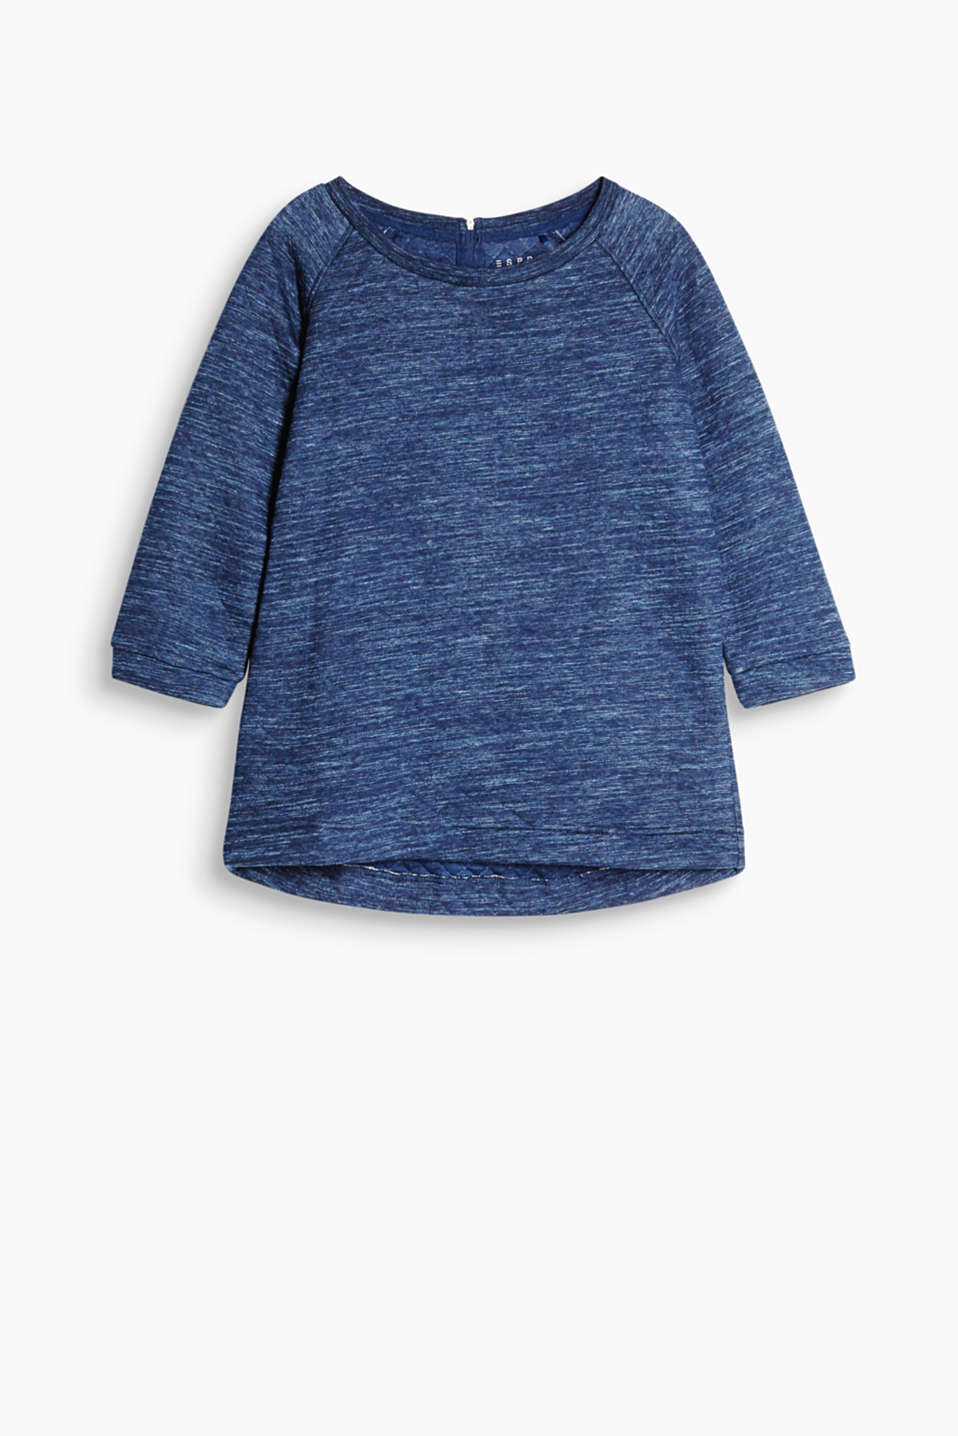 Sweatshirt in soft blended cotton with 3/4-length raglan sleeves and a rounded hem